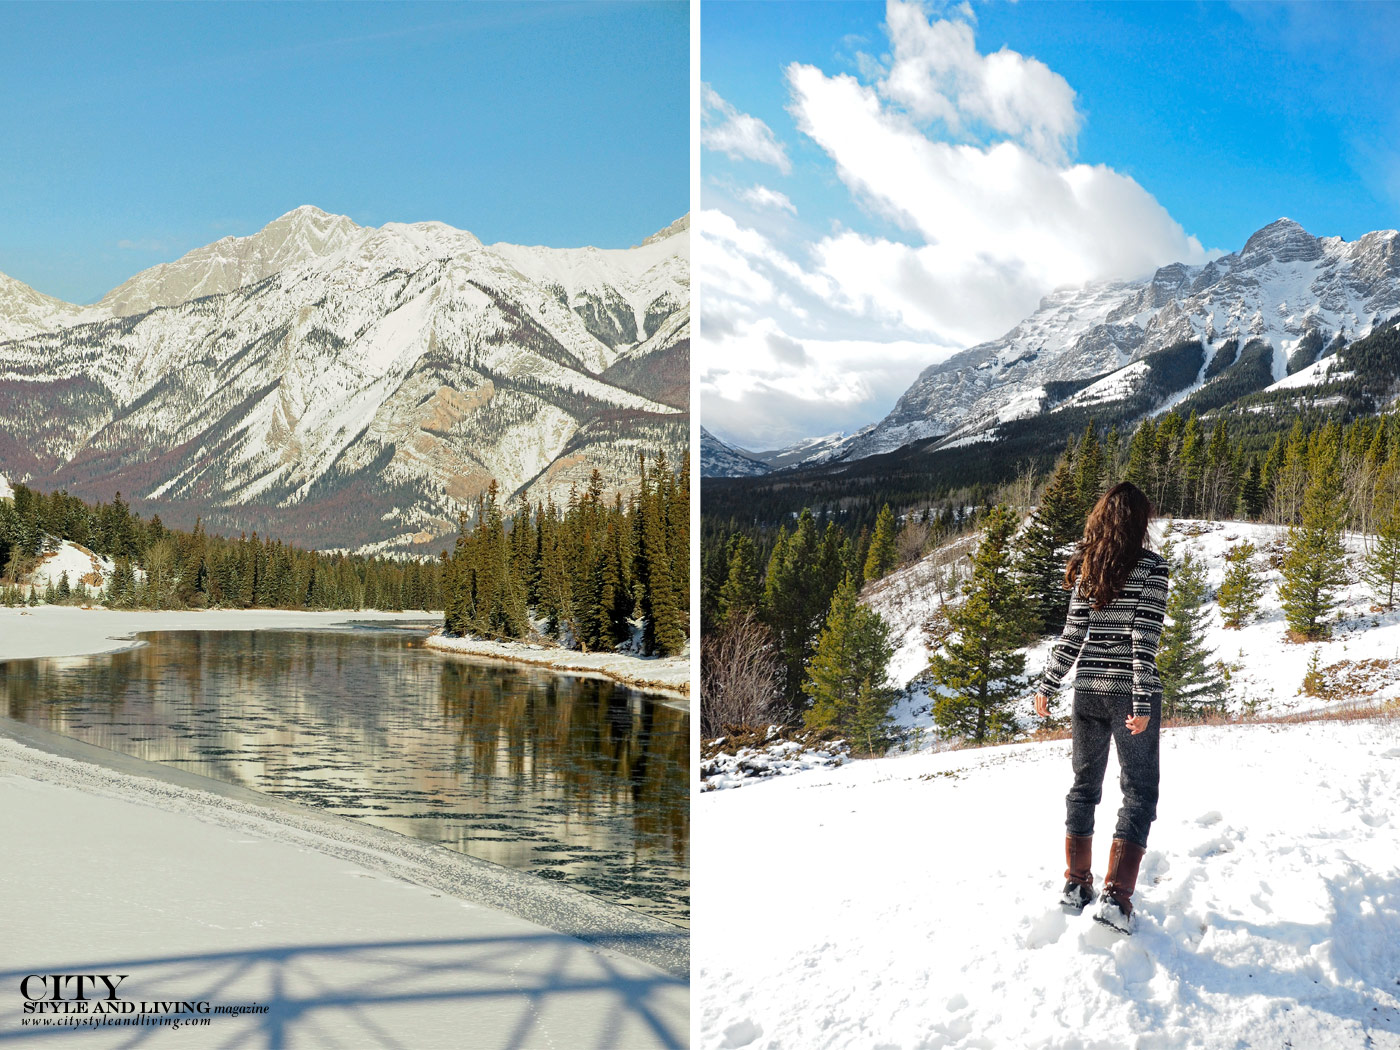 City Style and Living Magazine Spring Road Trip Rocky Mountain Road Trip Alberta Jasper mountains and kananaskis